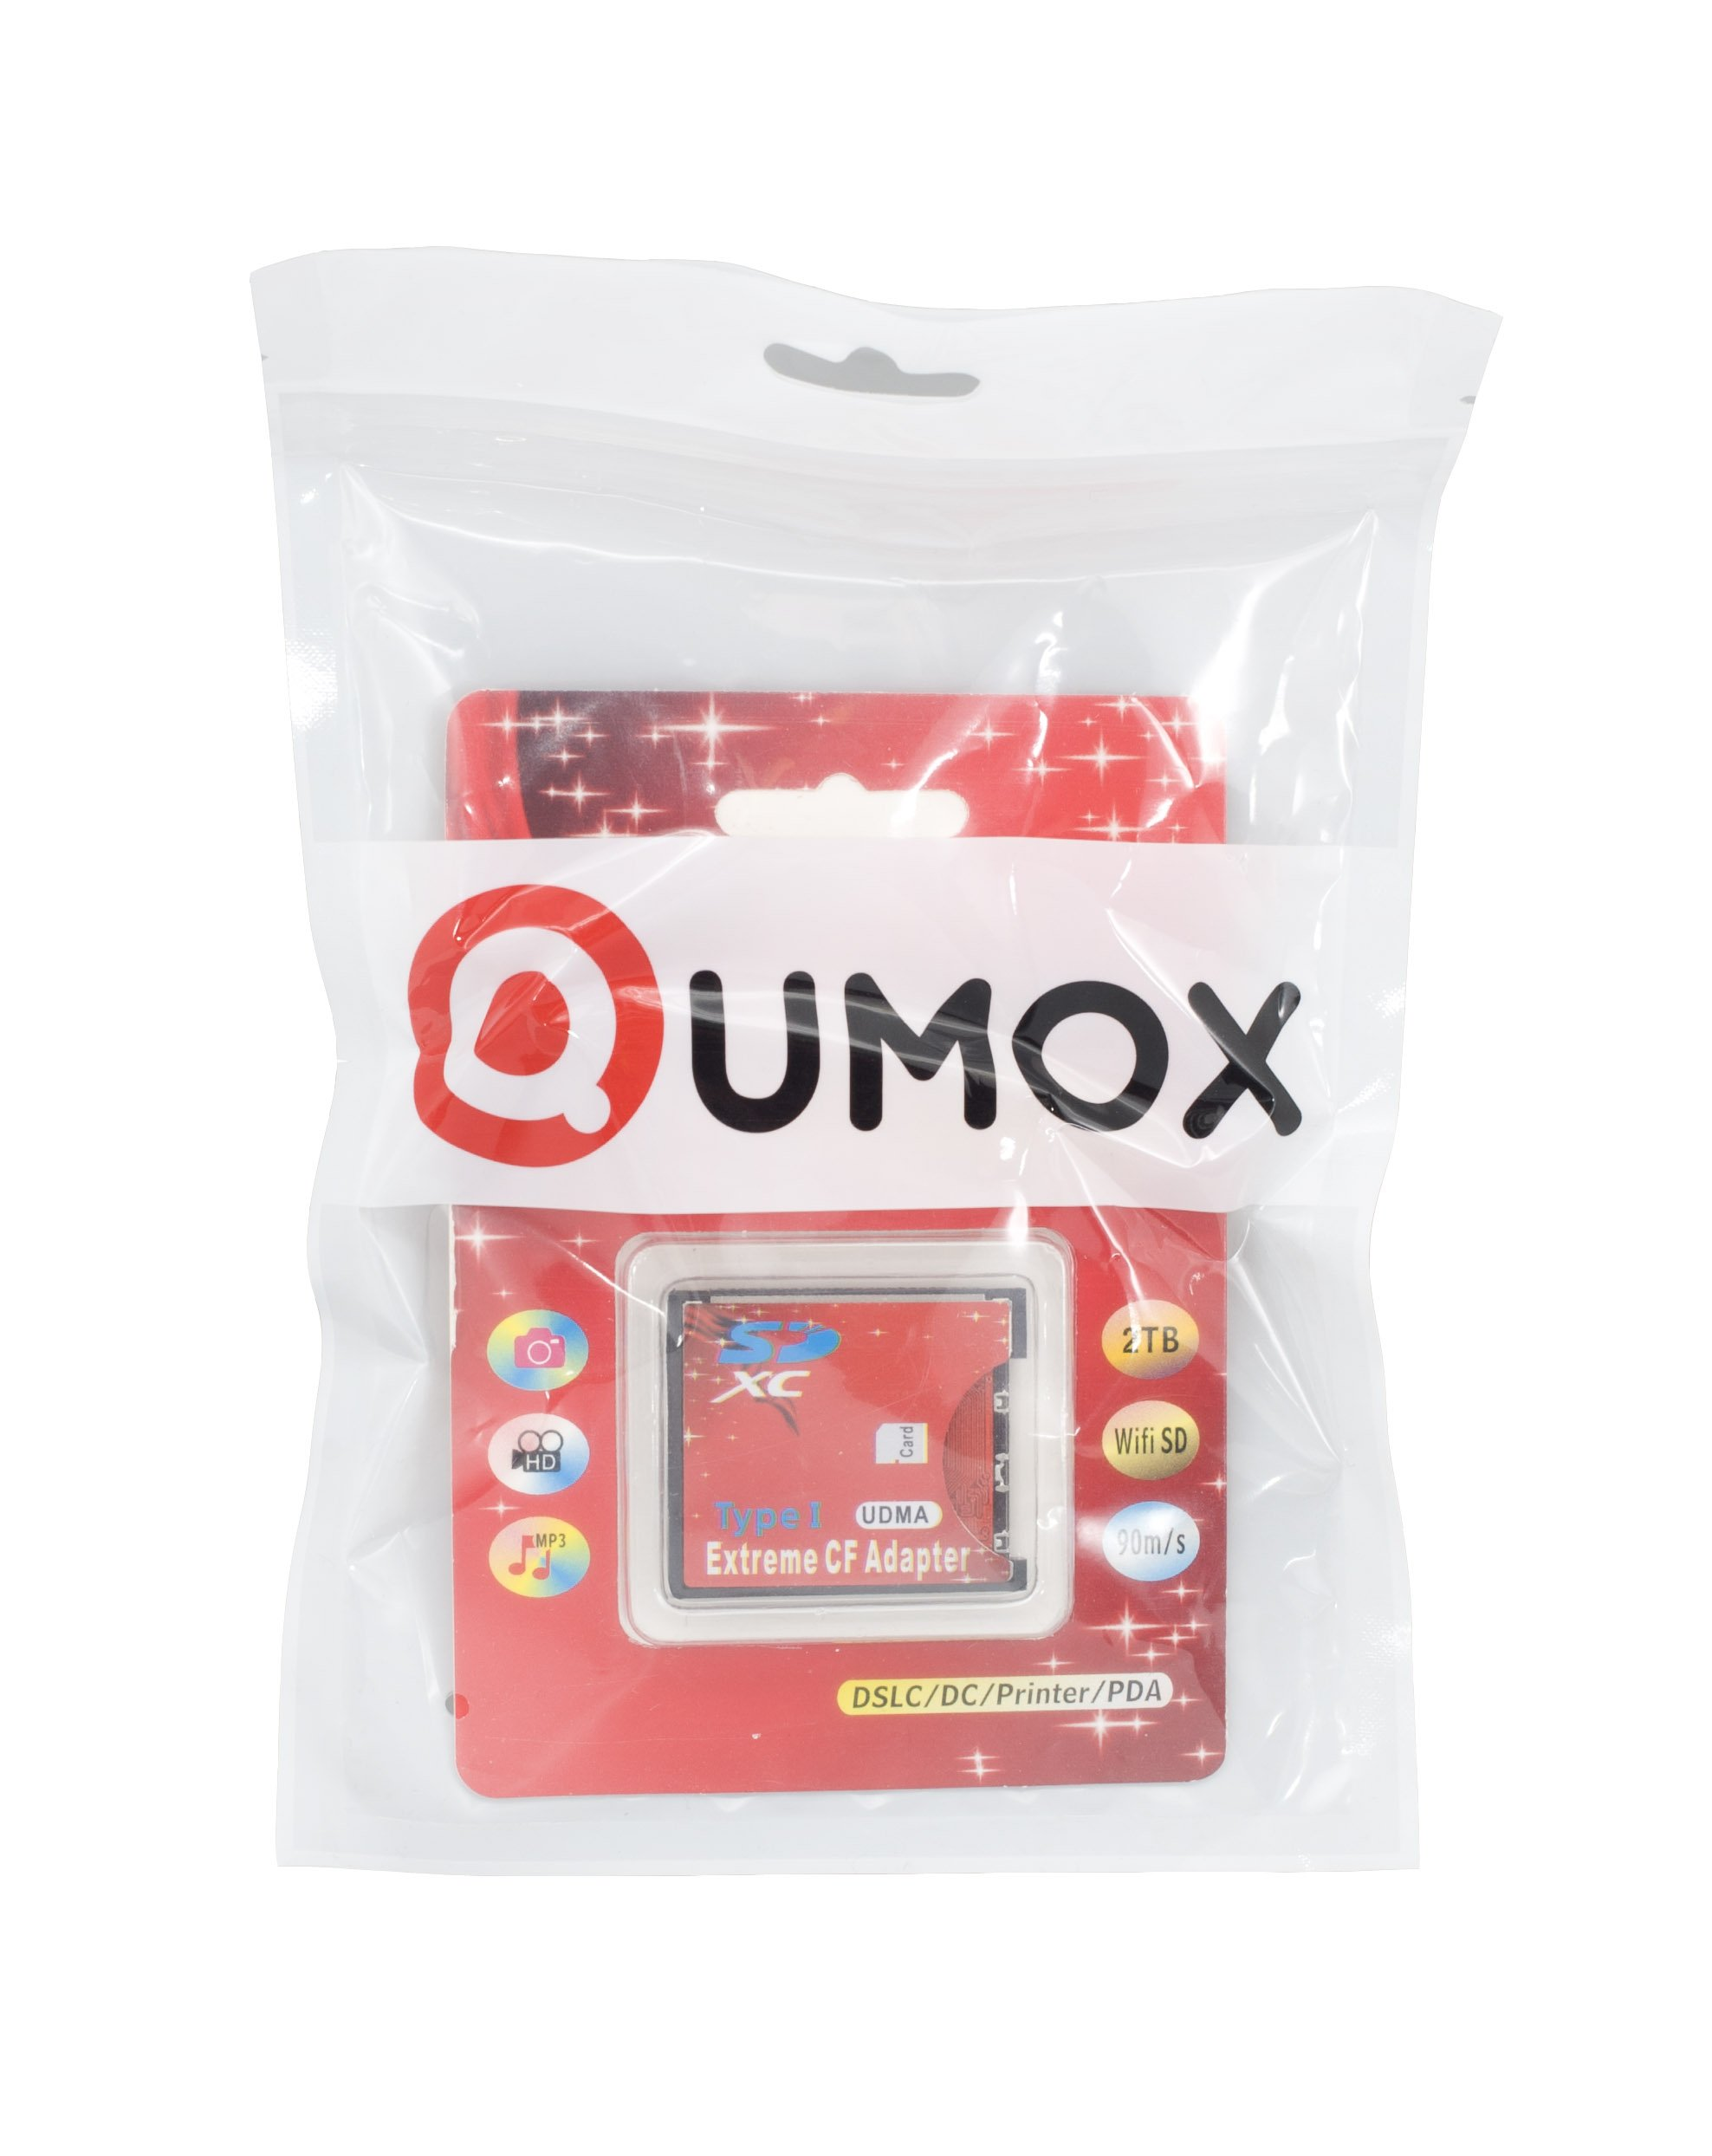 QUMOX SD SDHC SDXC To CF Compact Flash Memory Card Adapter Reader type 1 WIFI … by QUMOX (Image #1)